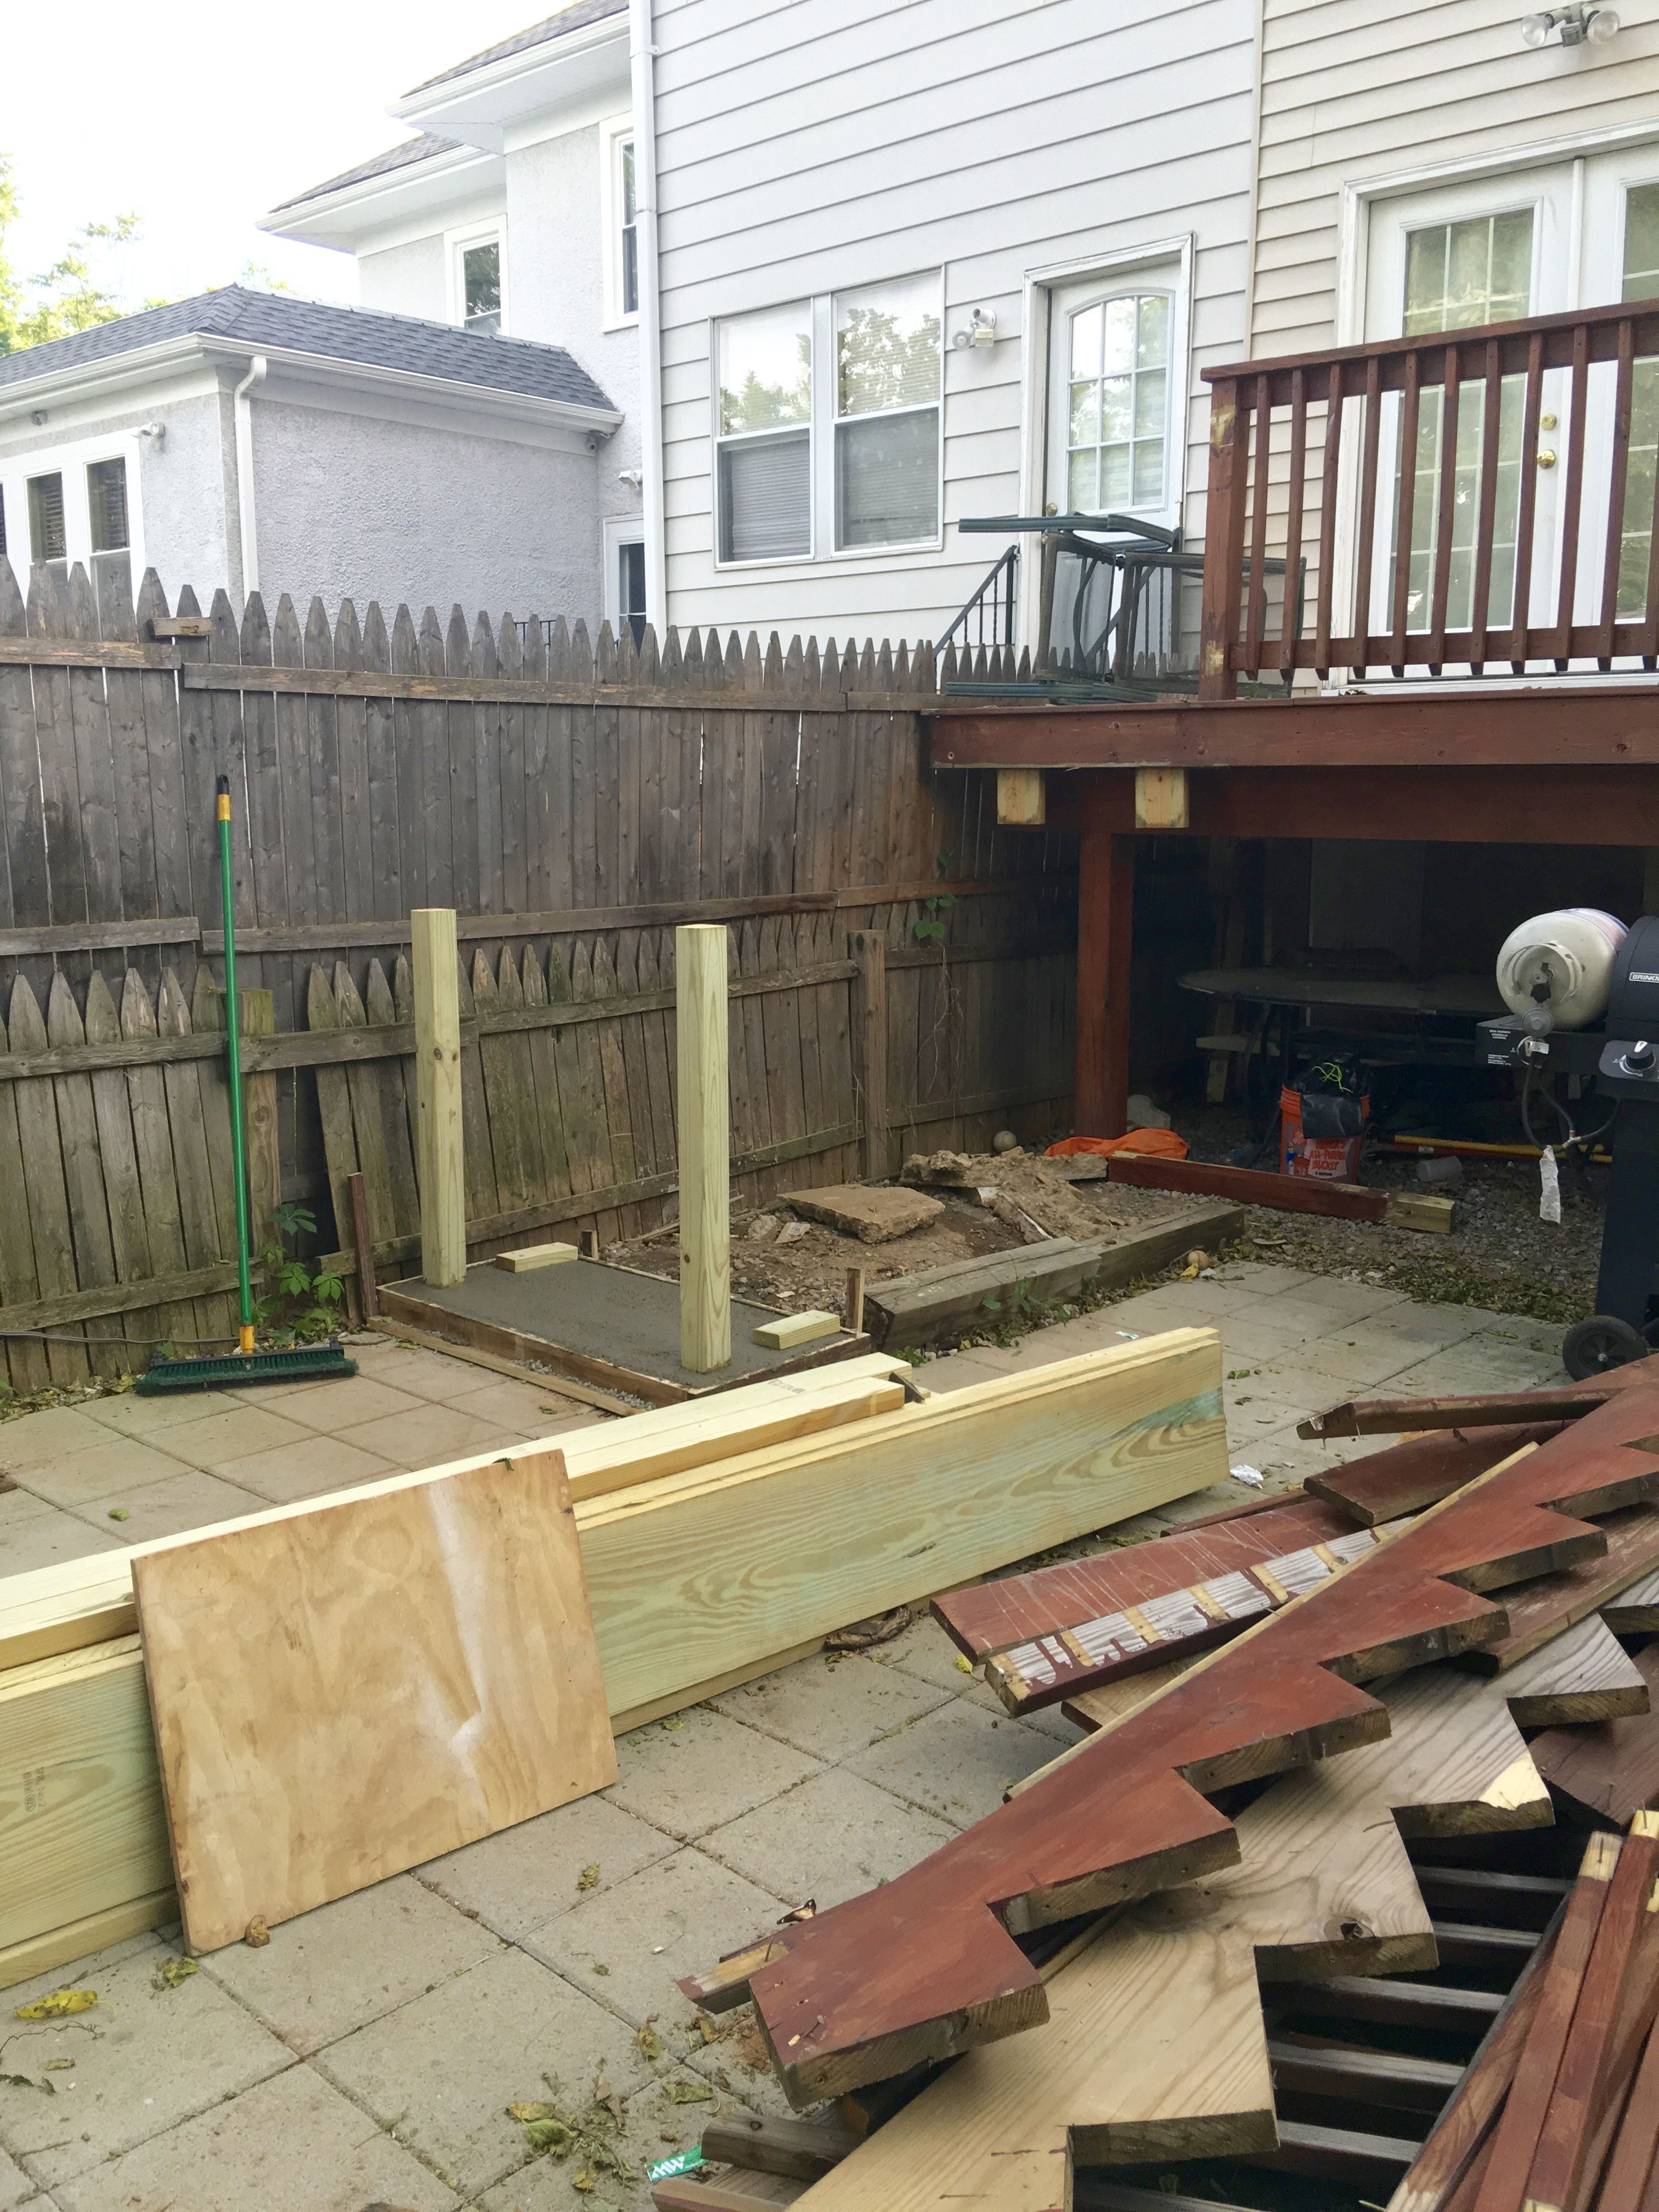 Merveilleux A Bottom Concrete Step And Deck Renovation In Process Replacing The Deck  Stairs | Eclectically Grey